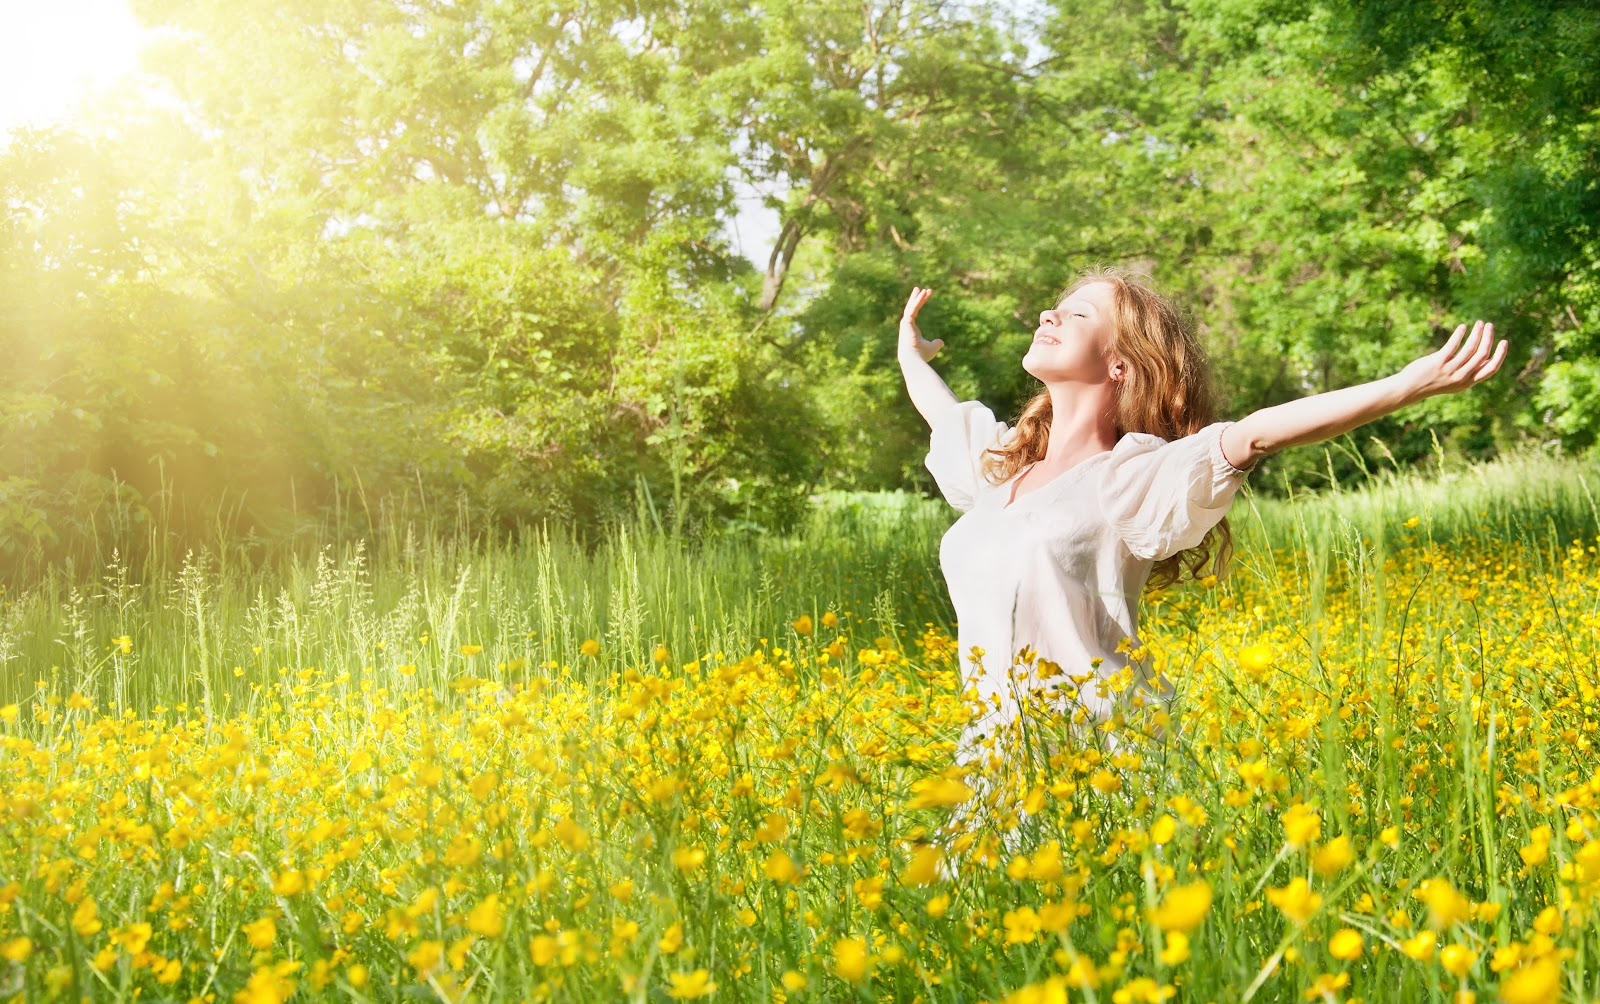 A woman in a field feeling contentment and happiness